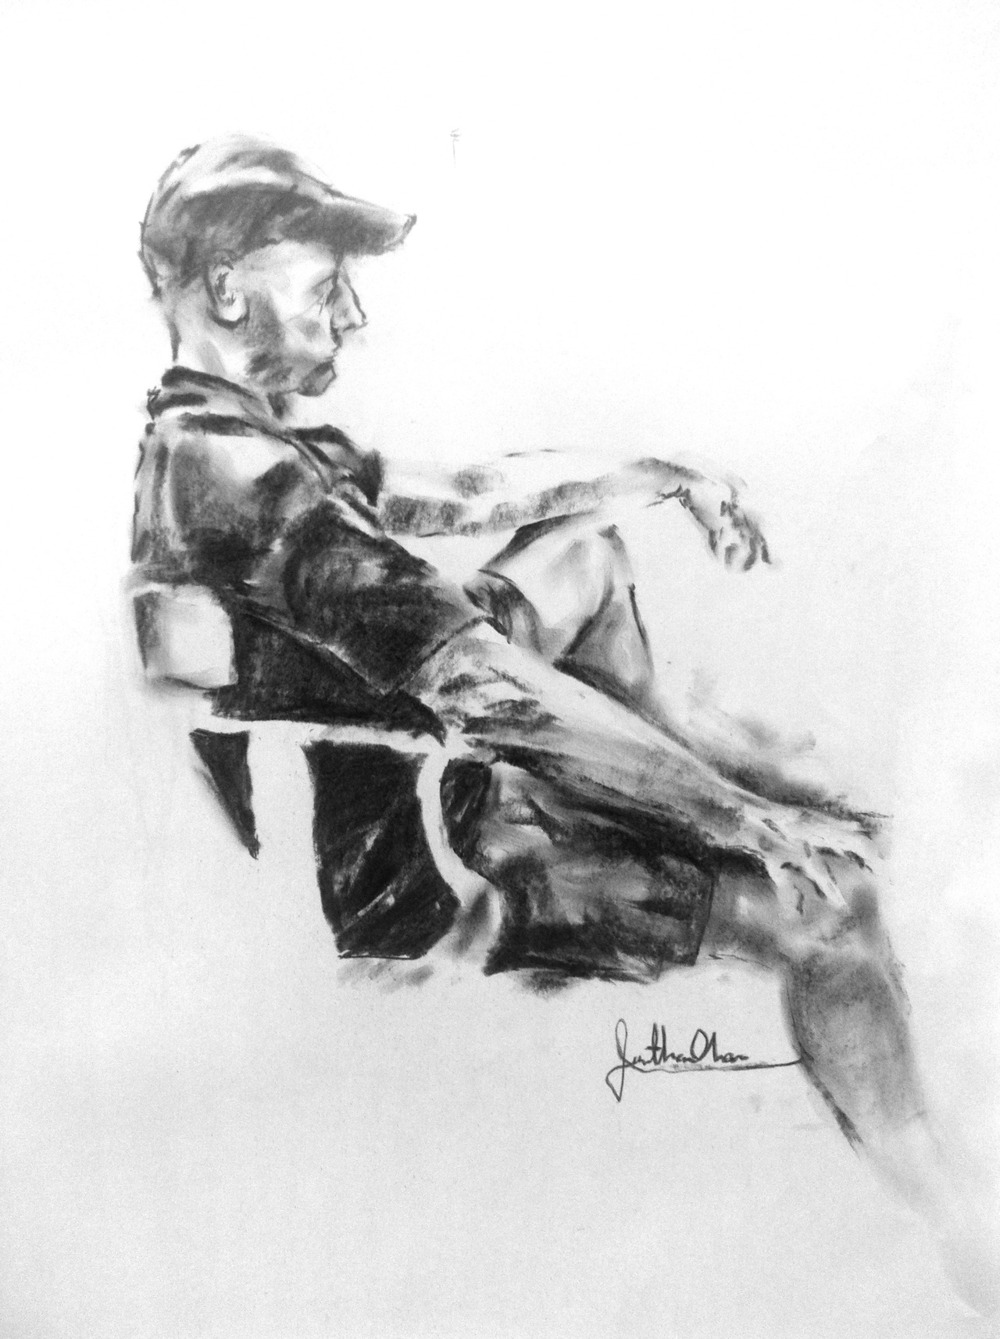 Clothed Male Model on Chair, 2011